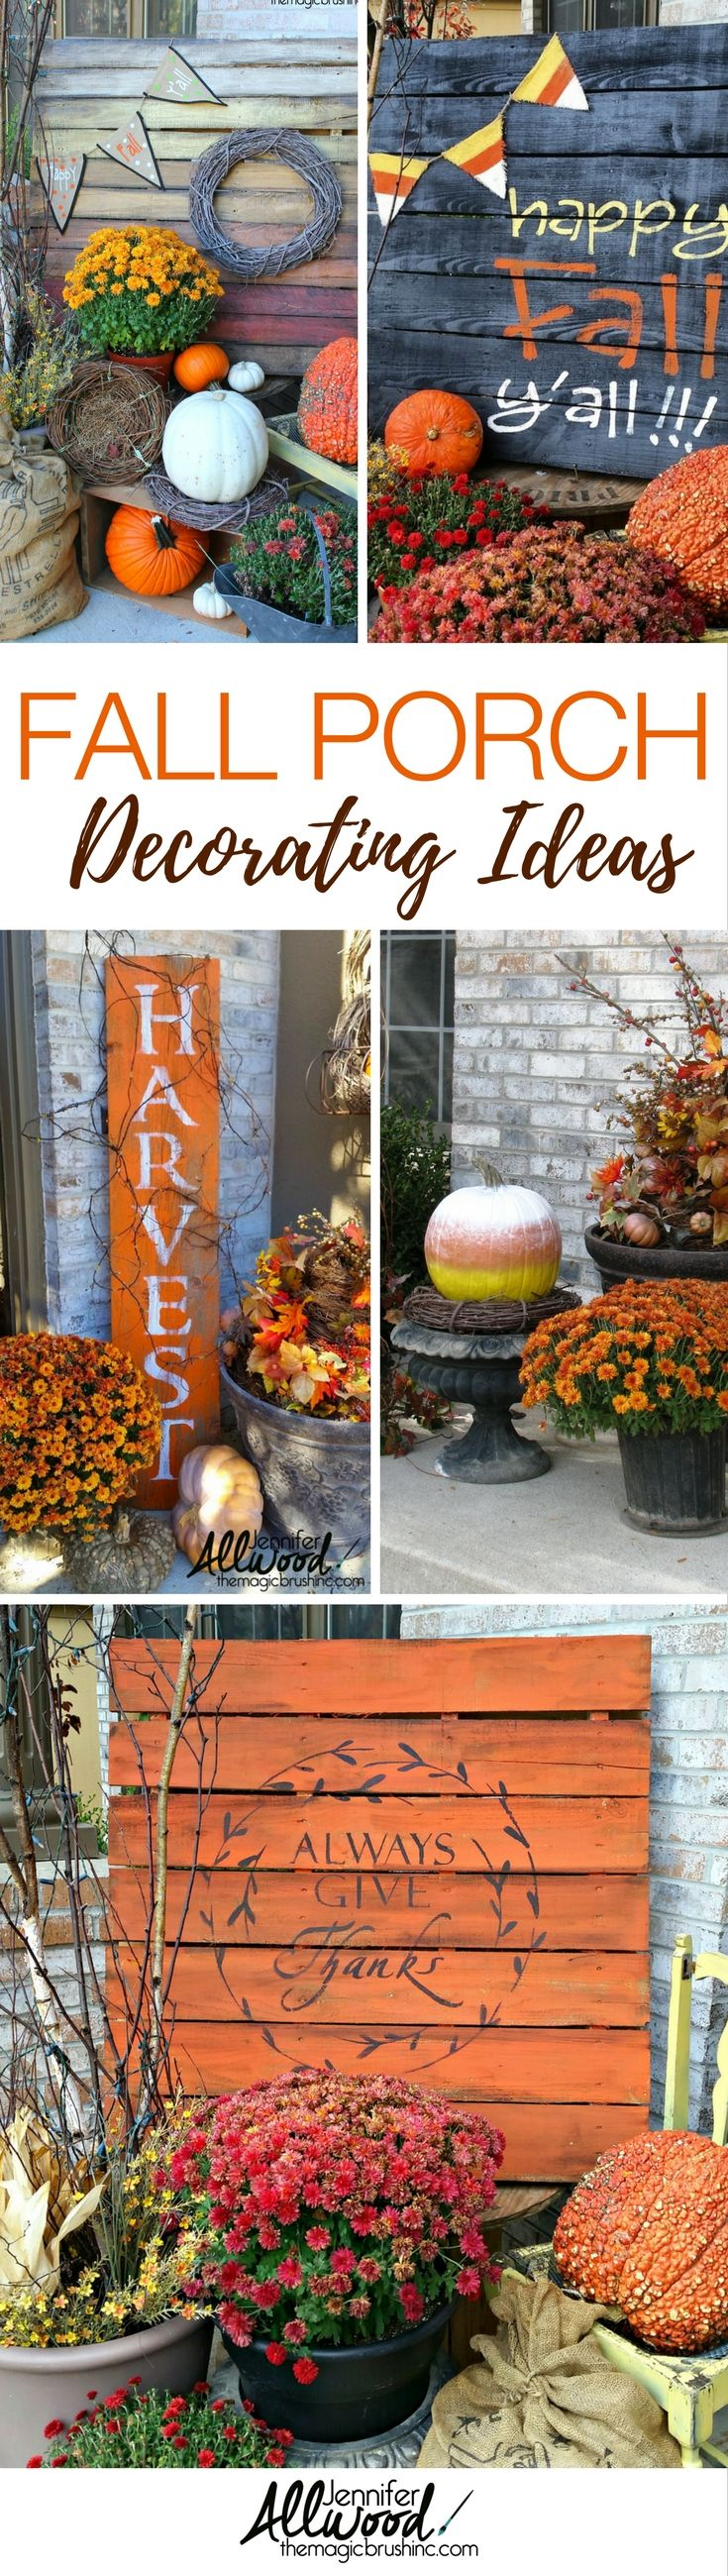 fall porch decorations - Fall Harvest Decor